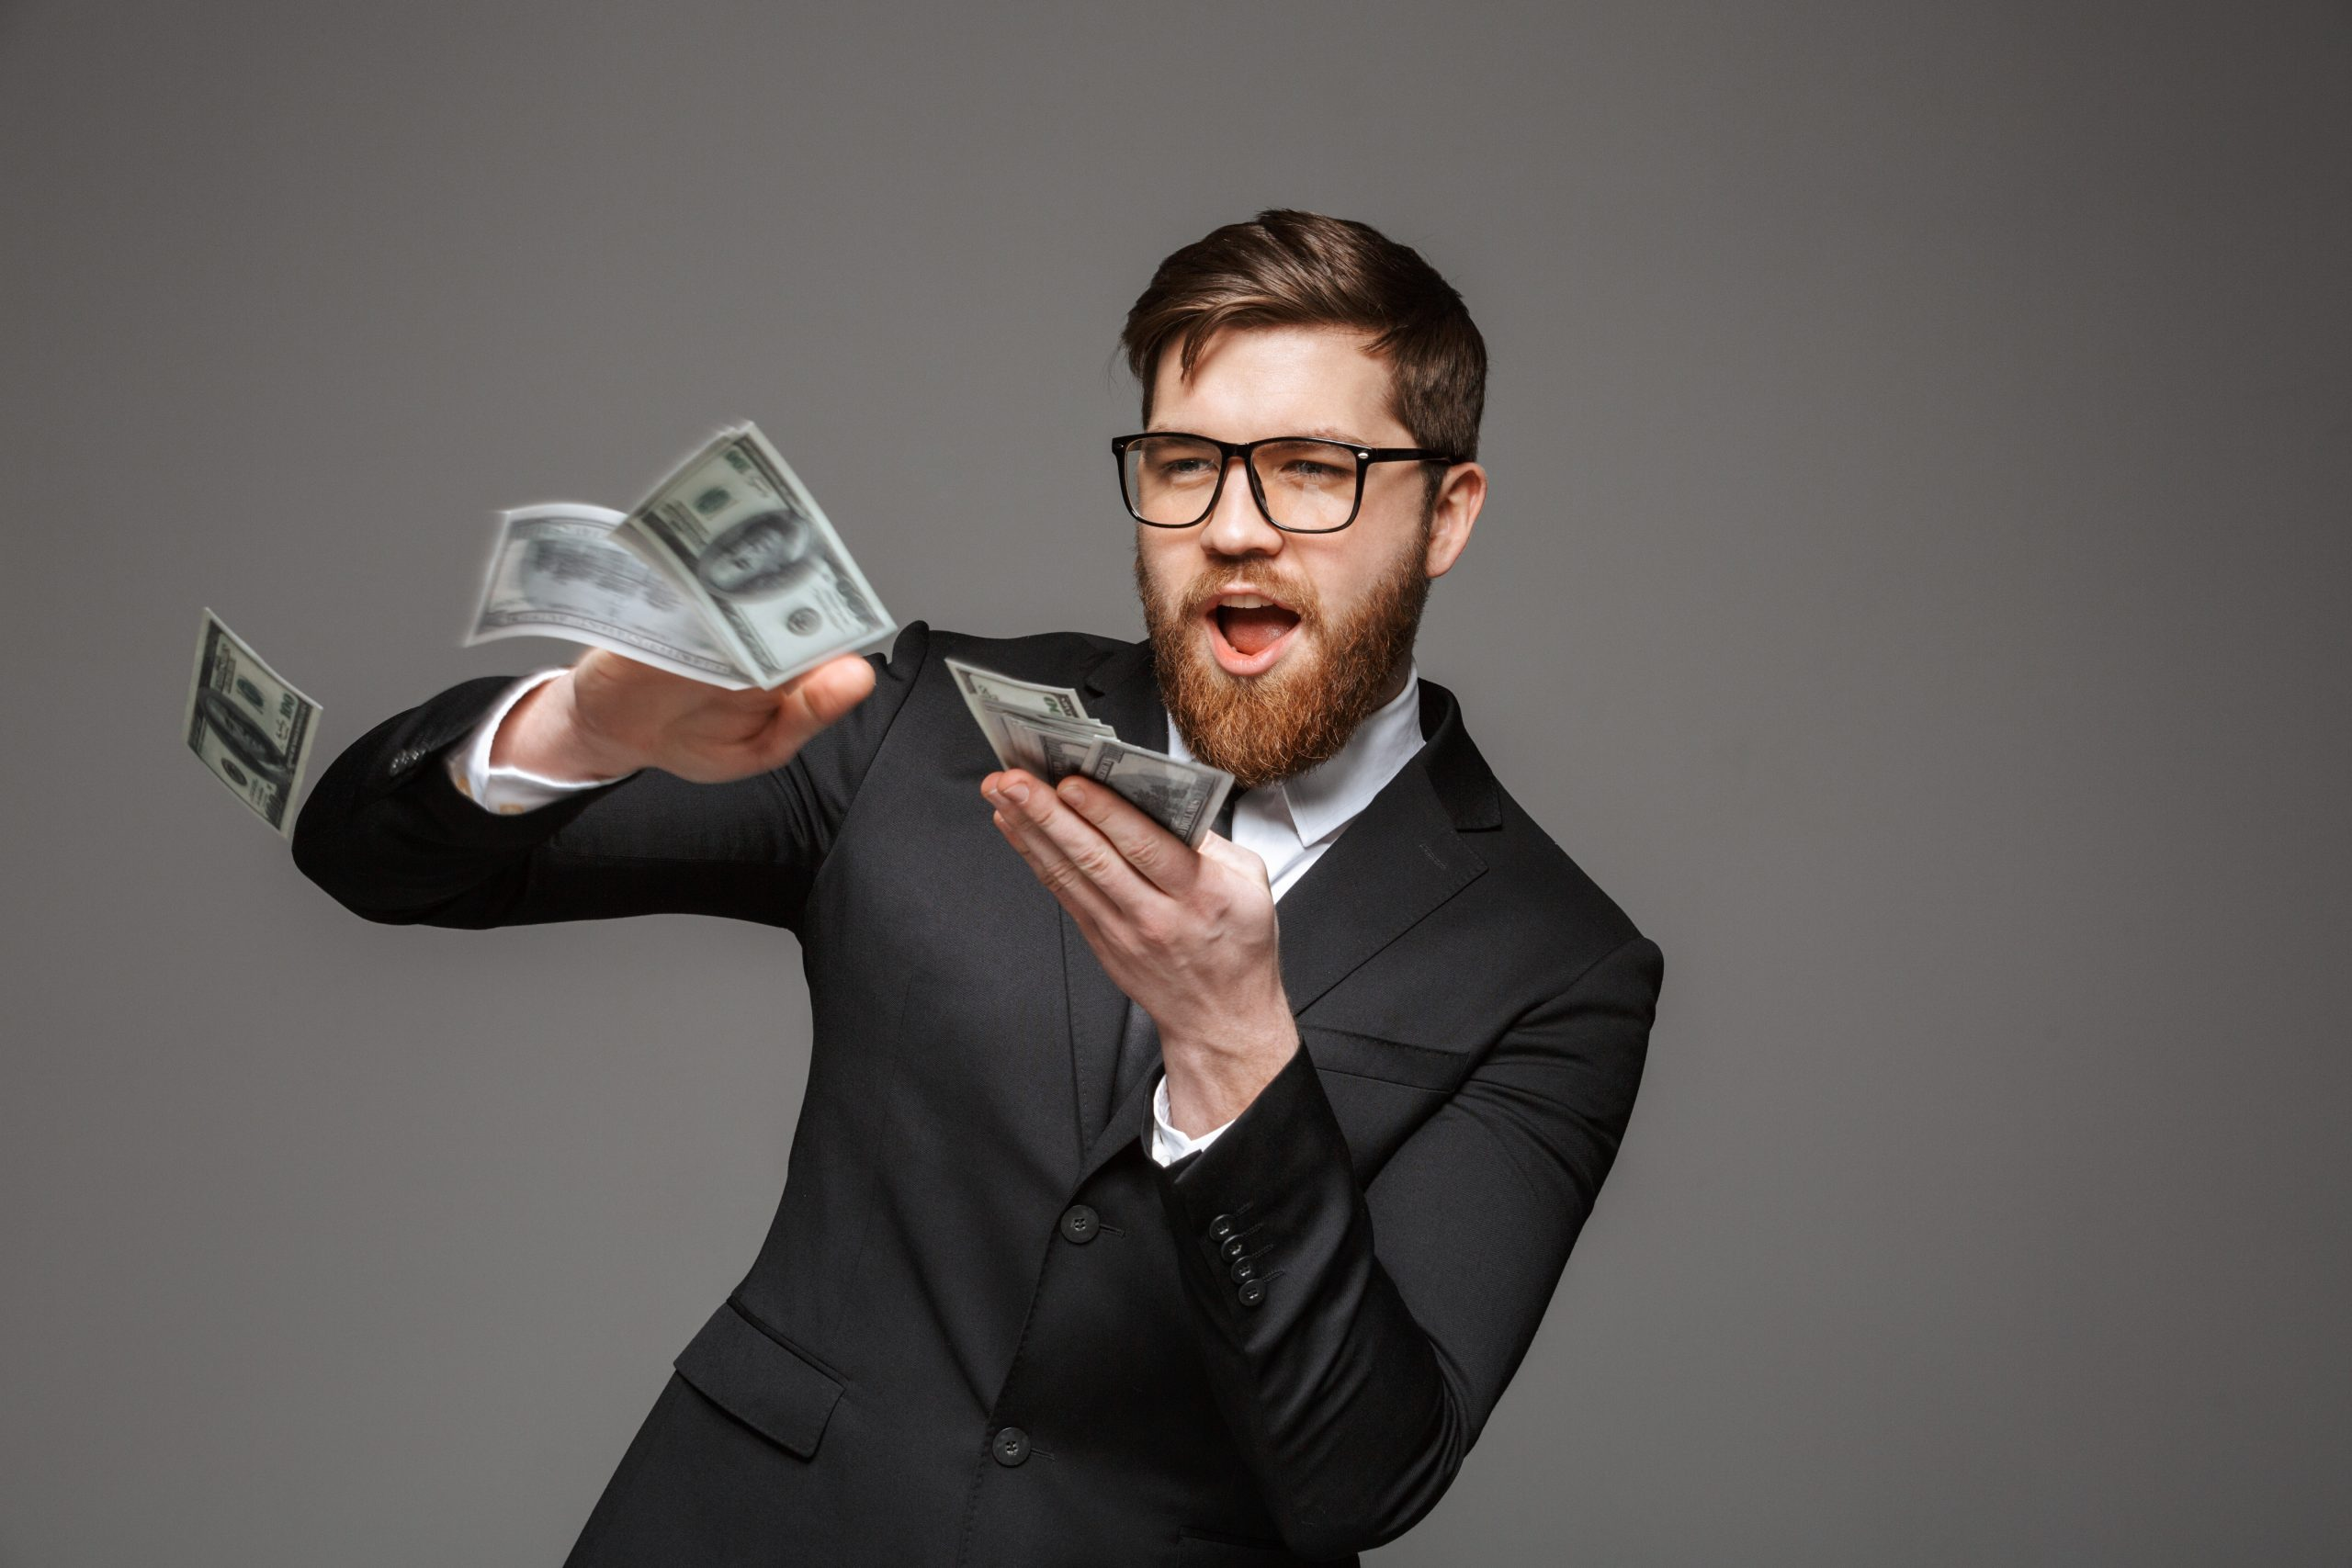 How Successful Business Owners Look at Financial Decisions